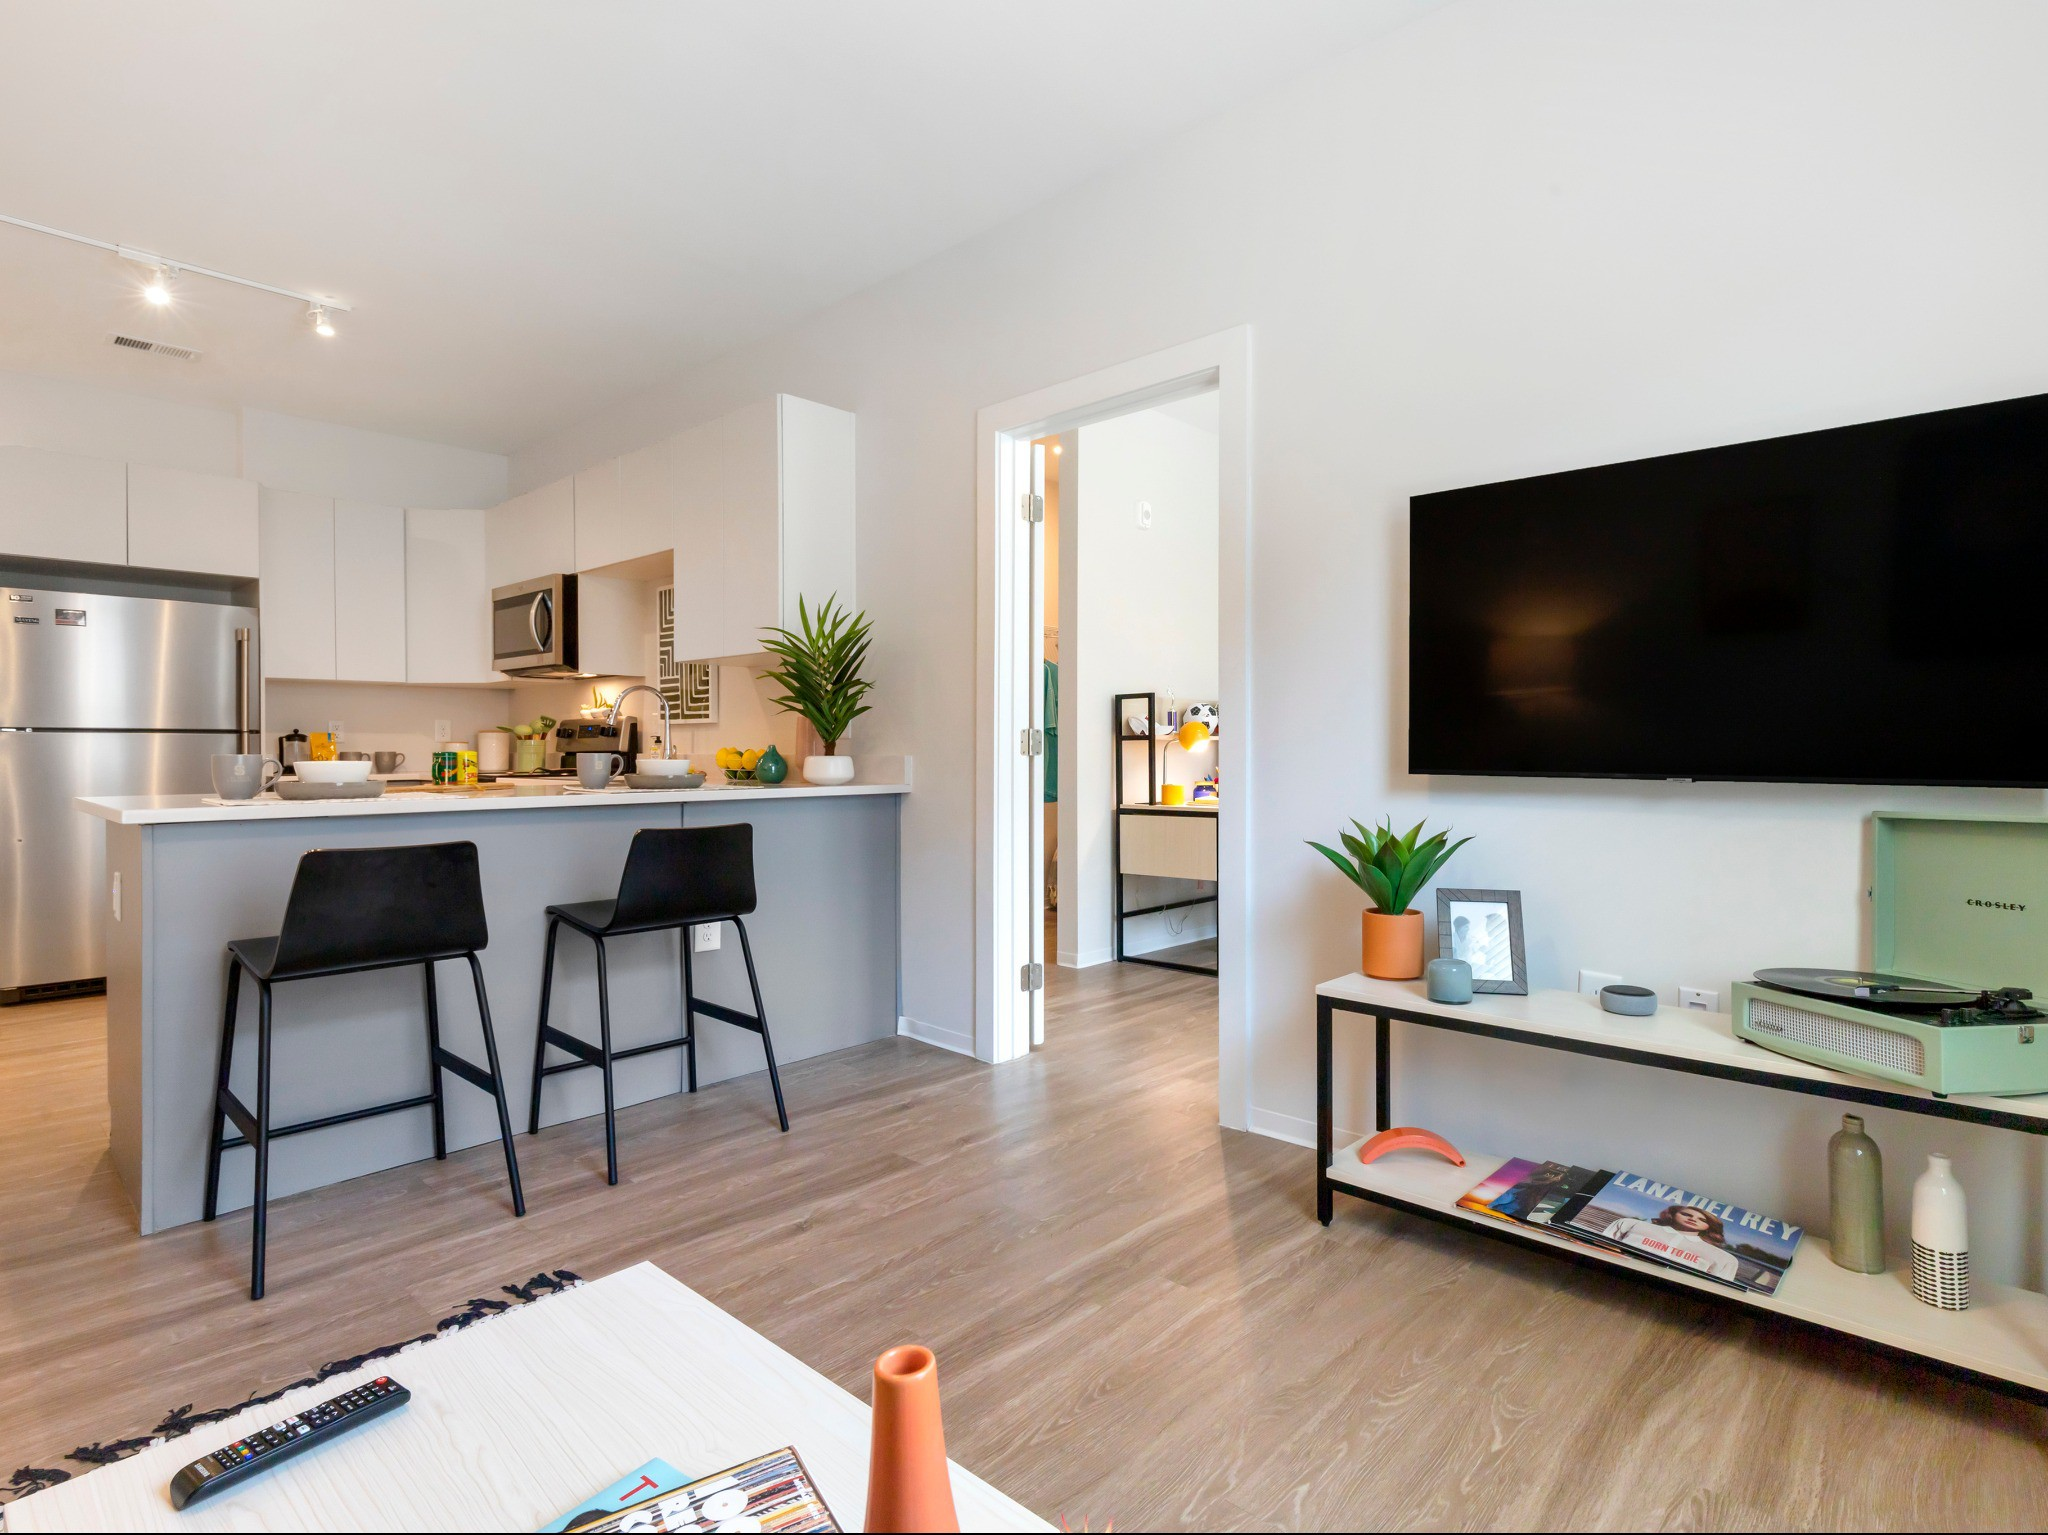 Apartments Near Raleigh Student | Uncommon Raleigh for Raleigh Students in Raleigh, NC